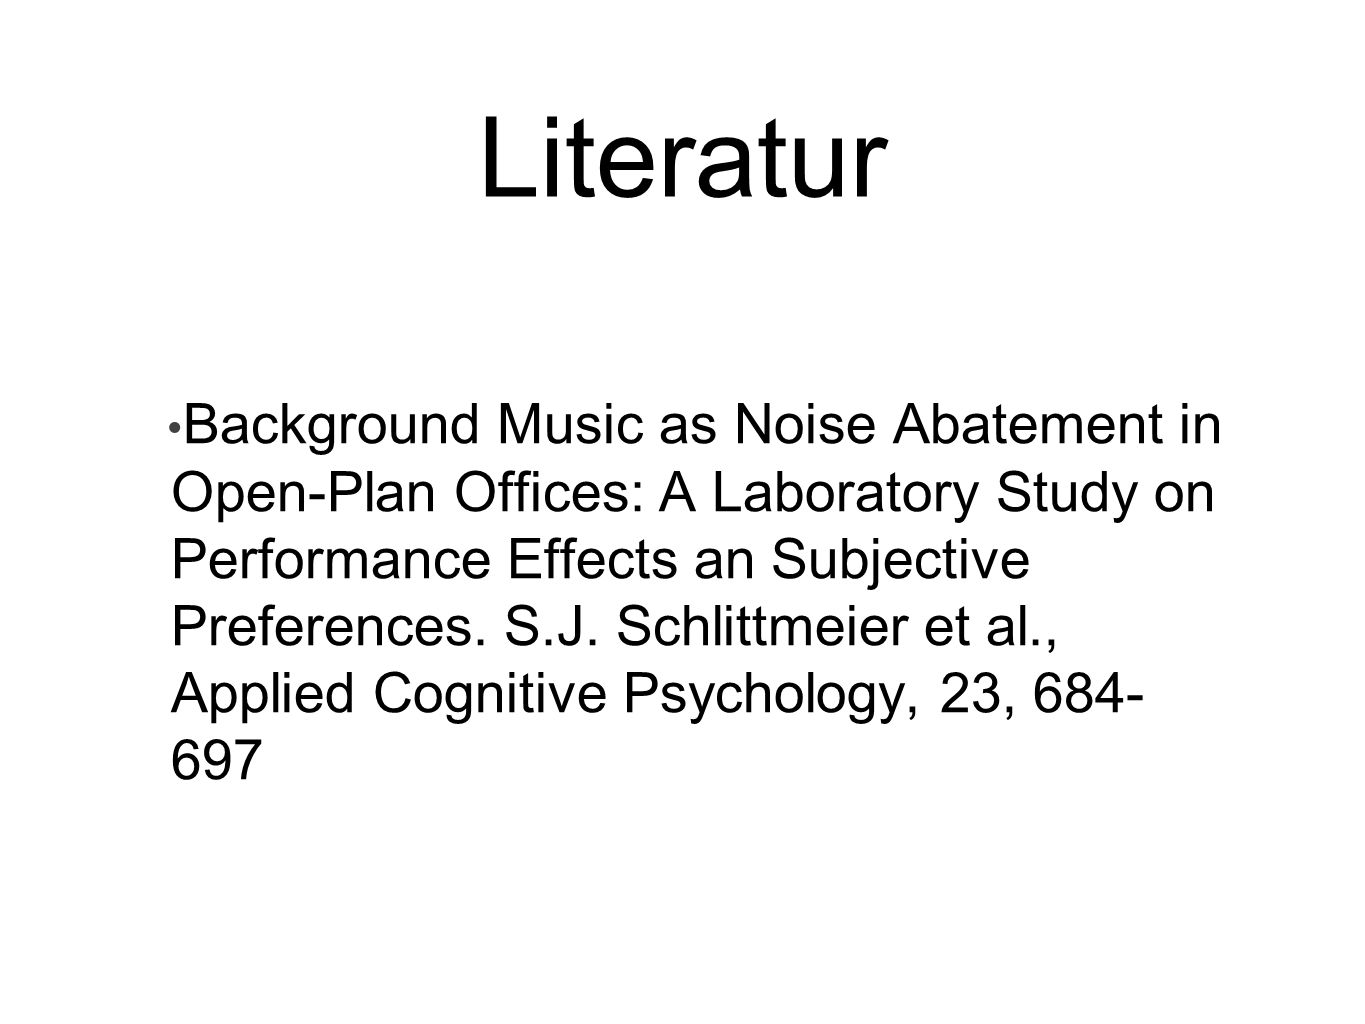 Literatur Background Music as Noise Abatement in Open-Plan Offices: A Laboratory Study on Performance Effects an Subjective Preferences. S.J. Schlittm